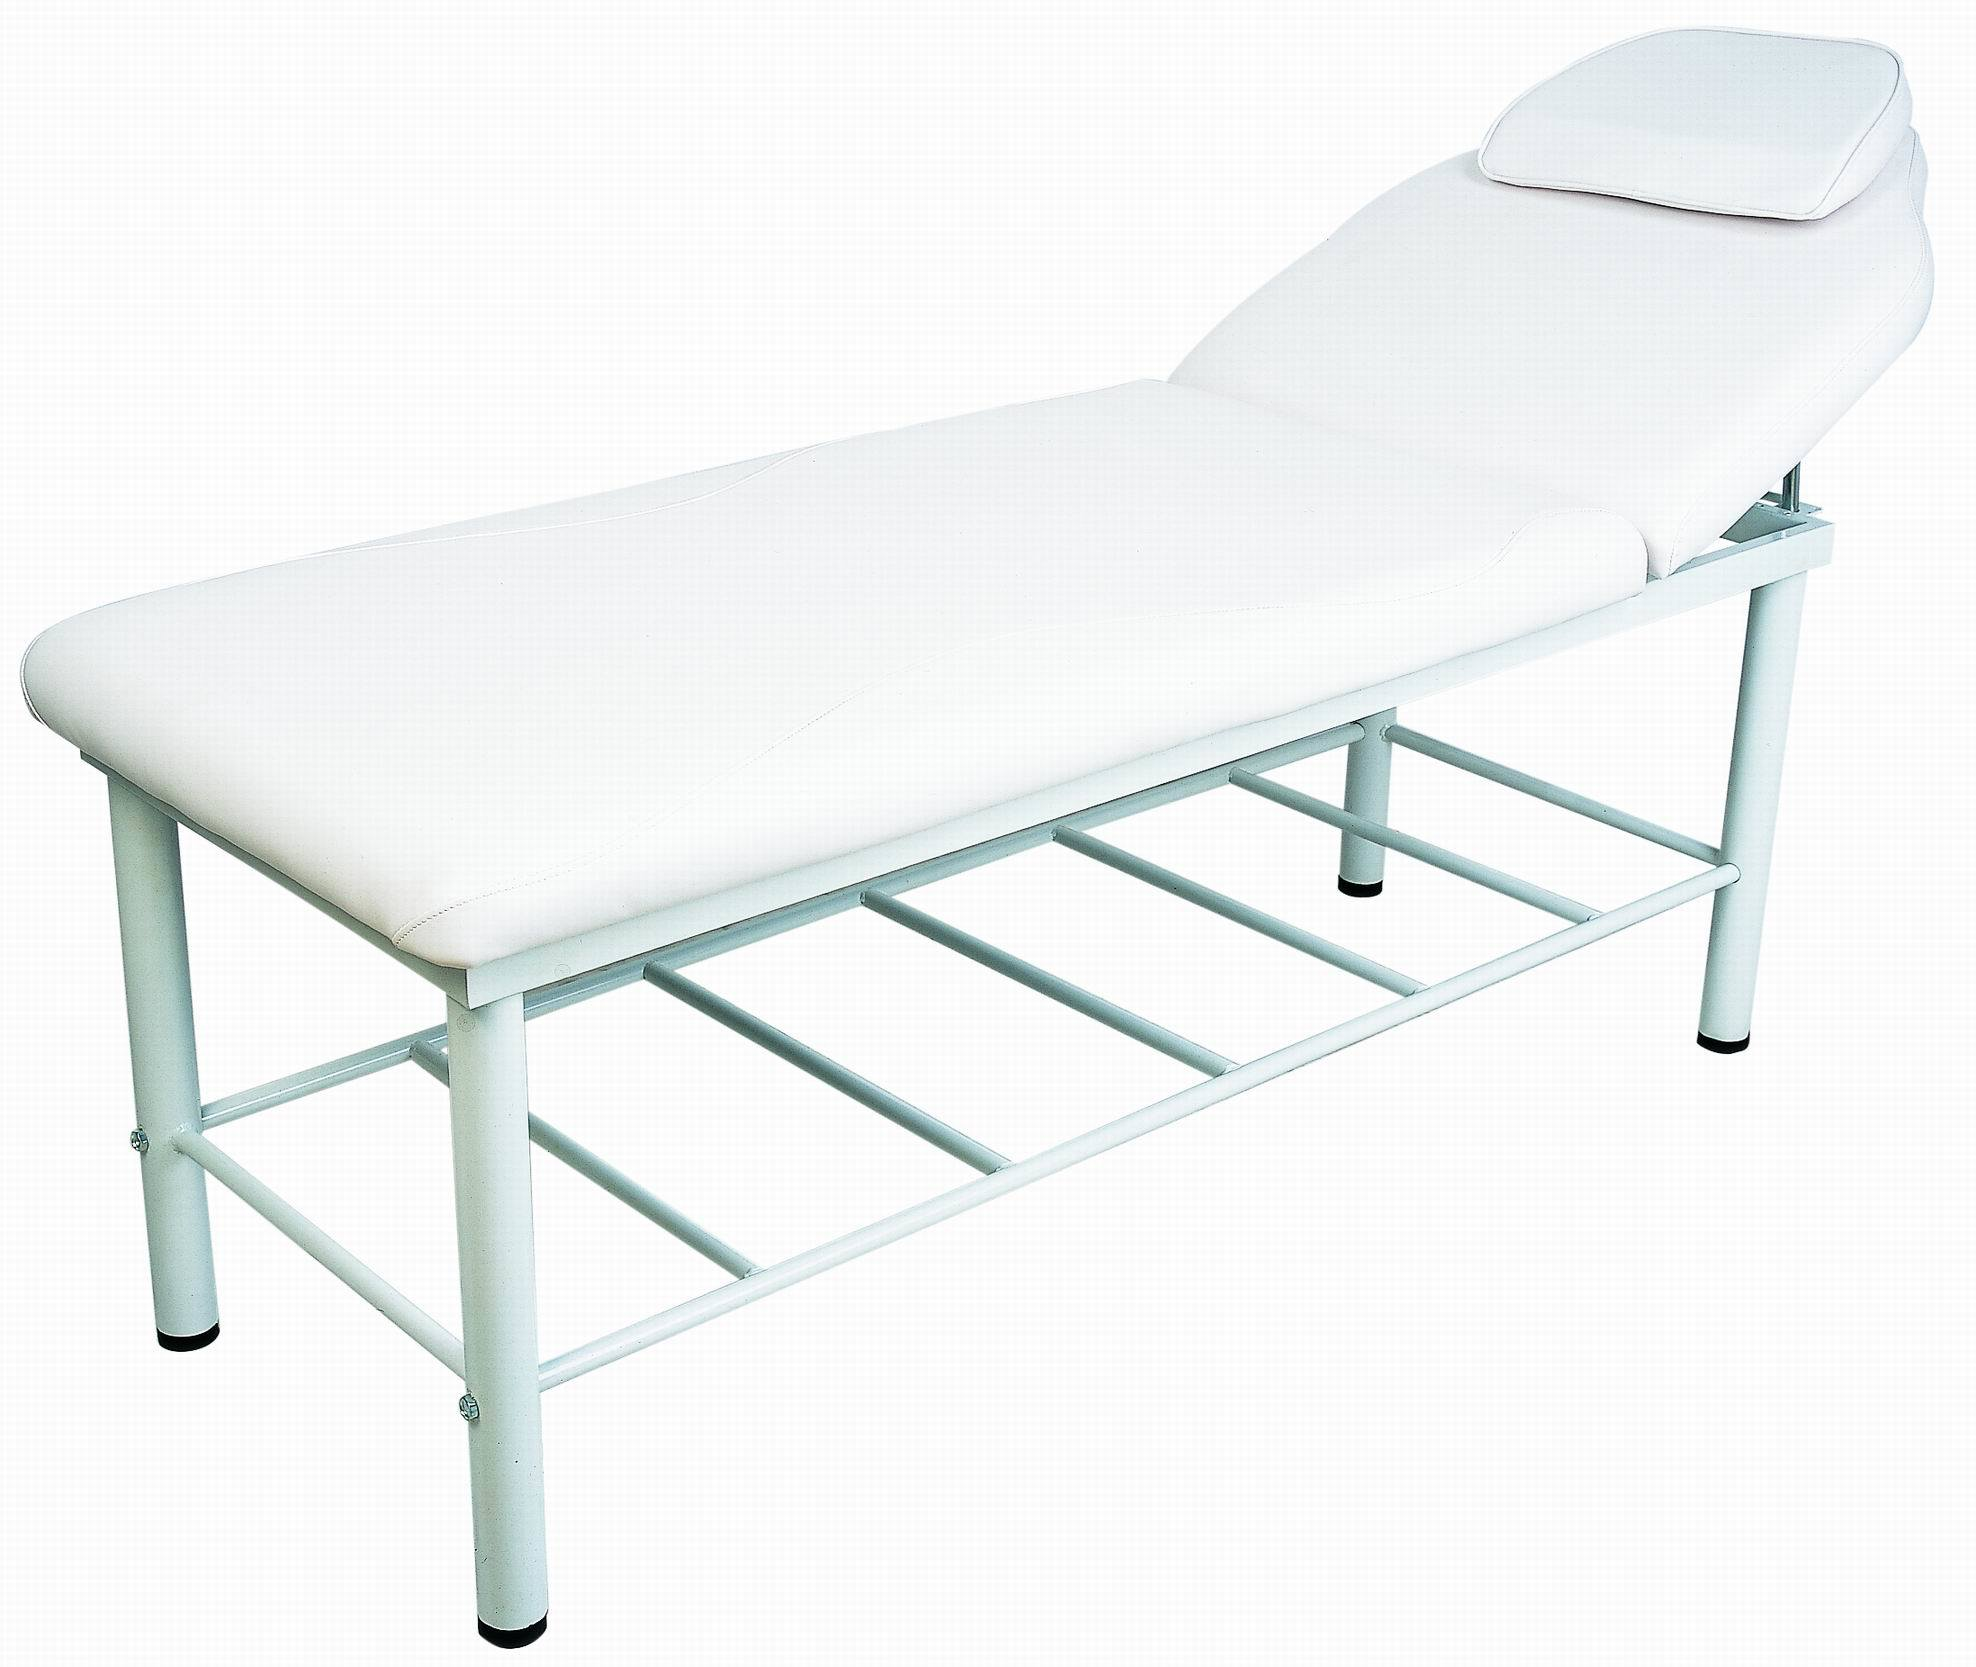 Facial and massage bed was